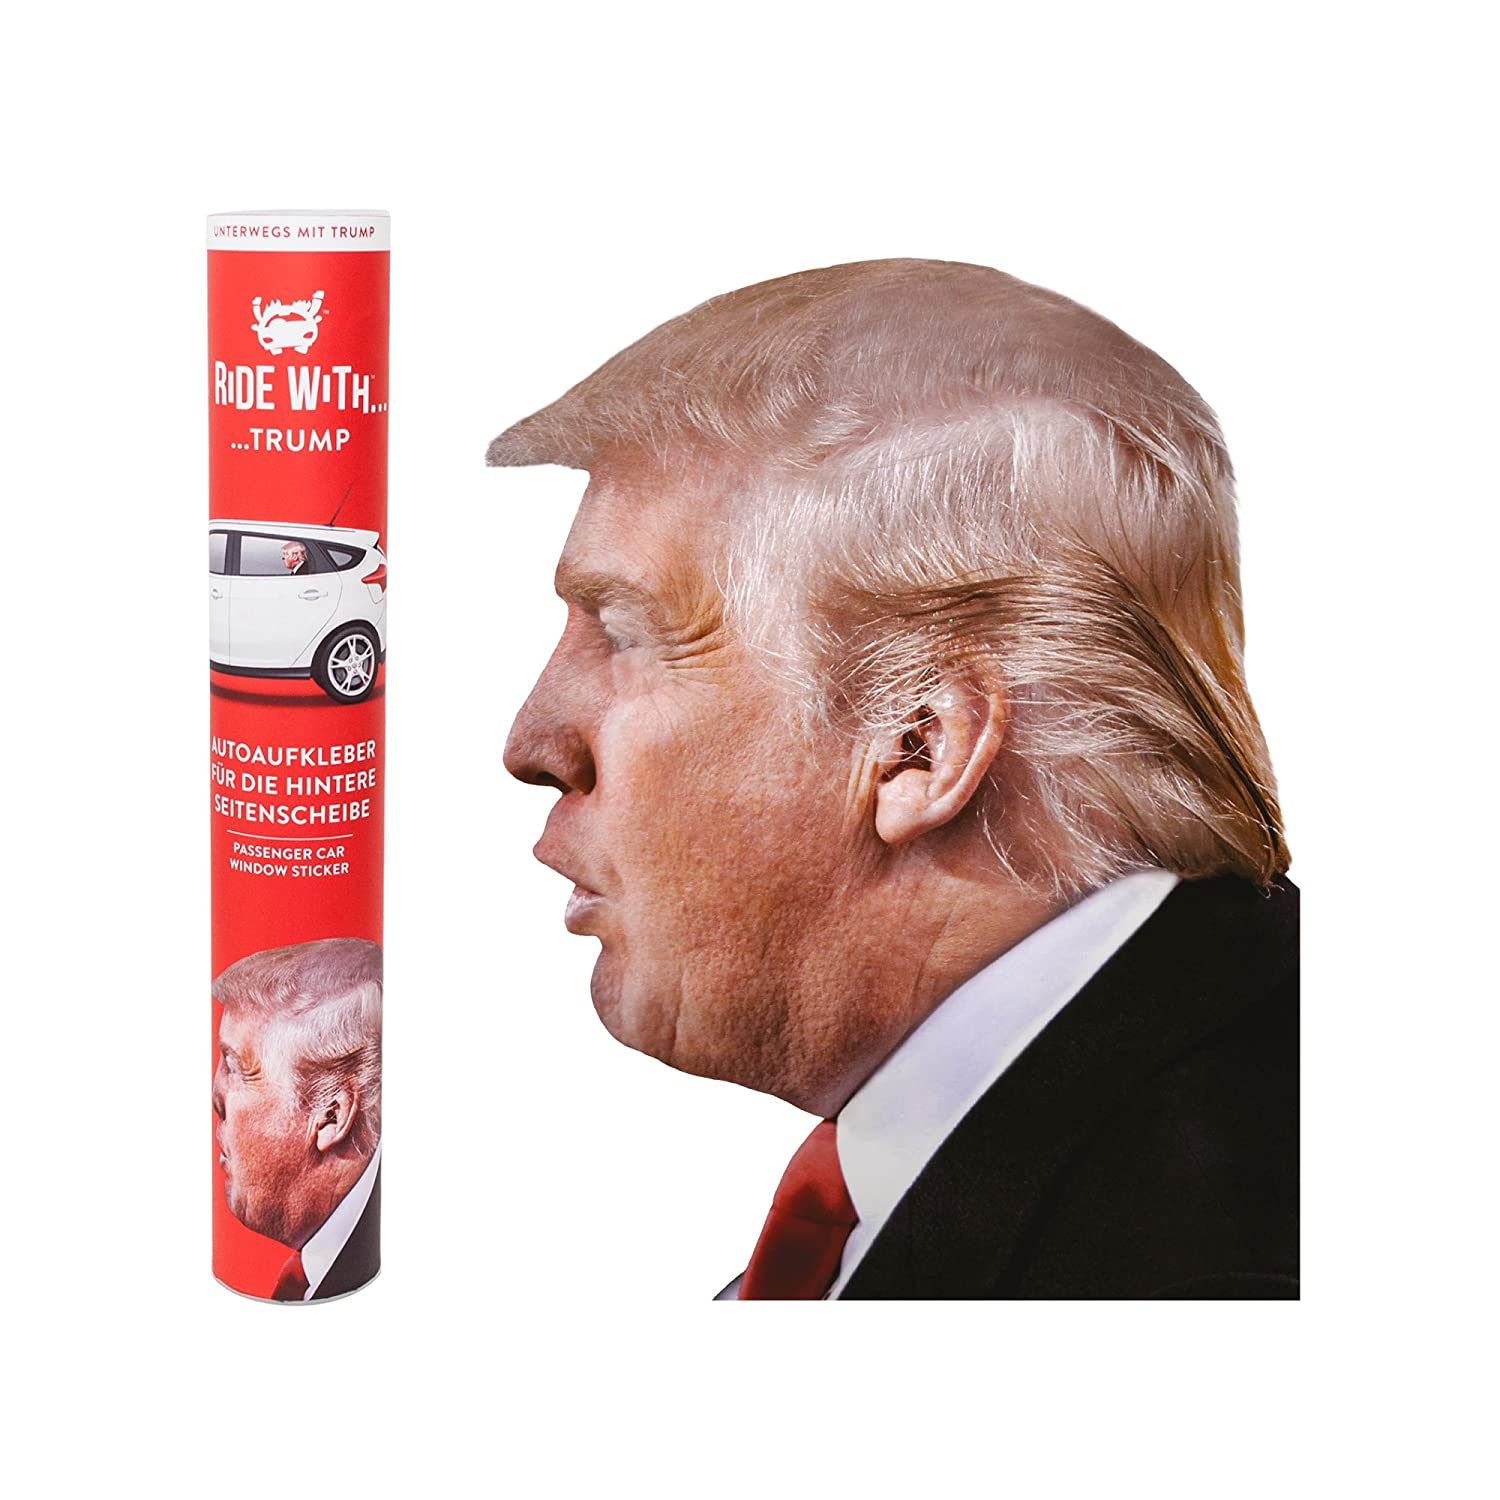 Car window sticker with donald trump head only 30 5 x 30 x 0 1 cm amazon co uk toys games